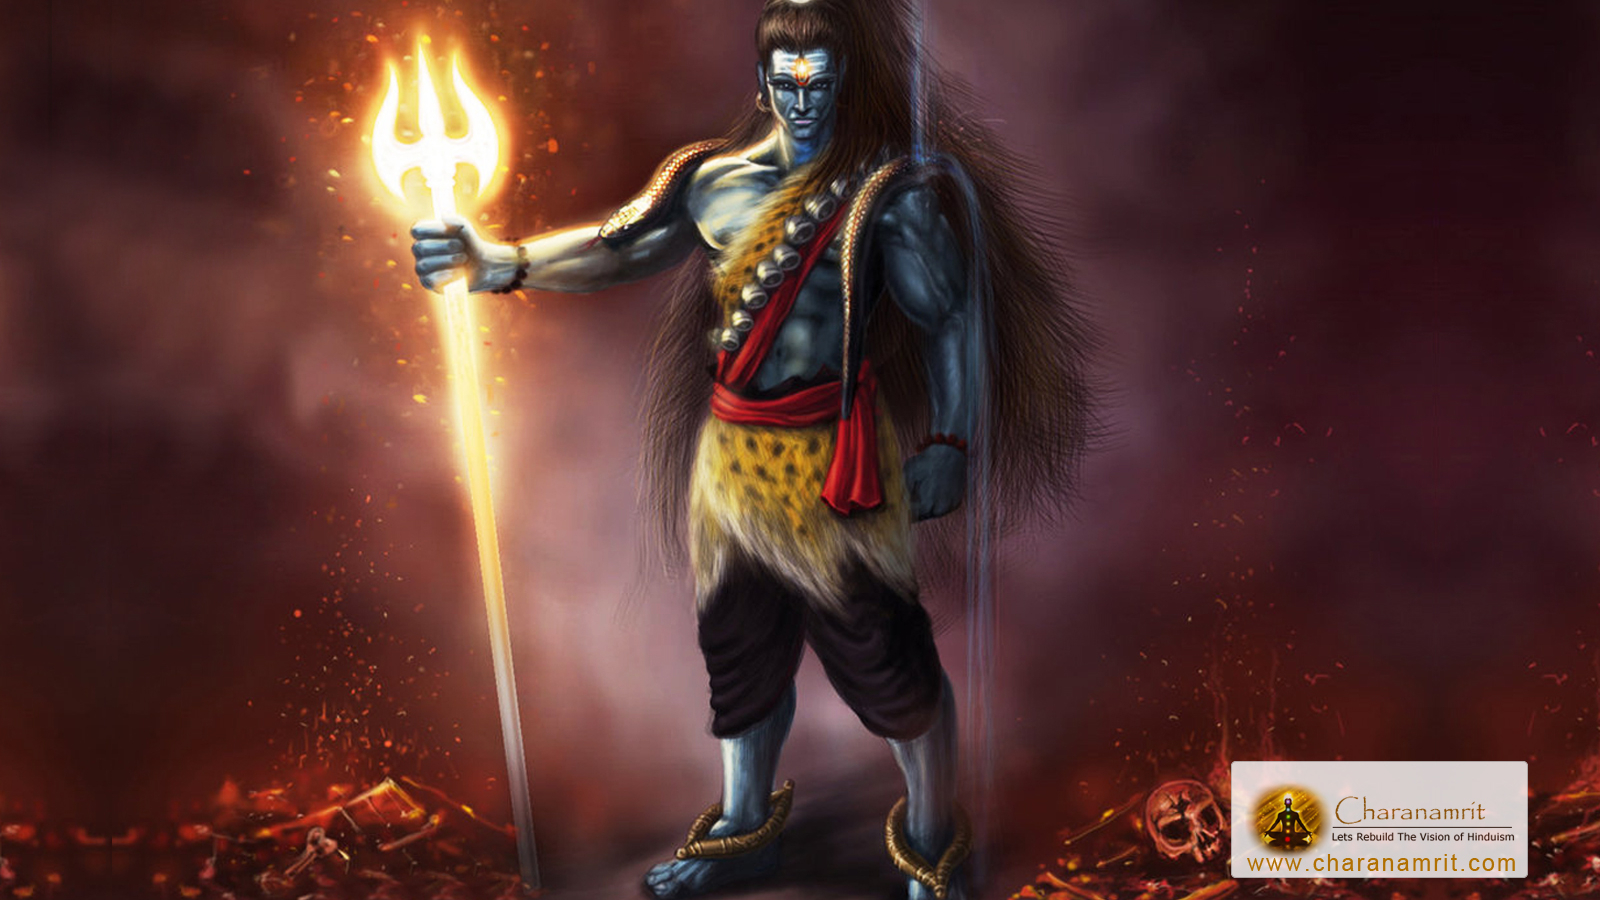 Free Download Lord Shiva Angry Hd Wallpapers 1080p On Share Online Lord Shiva 1600x1000 For Your Desktop Mobile Tablet Explore 43 Angry Backgrounds Angry Backgrounds Angry Birds Wallpaper Angry Beavers Wallpaper